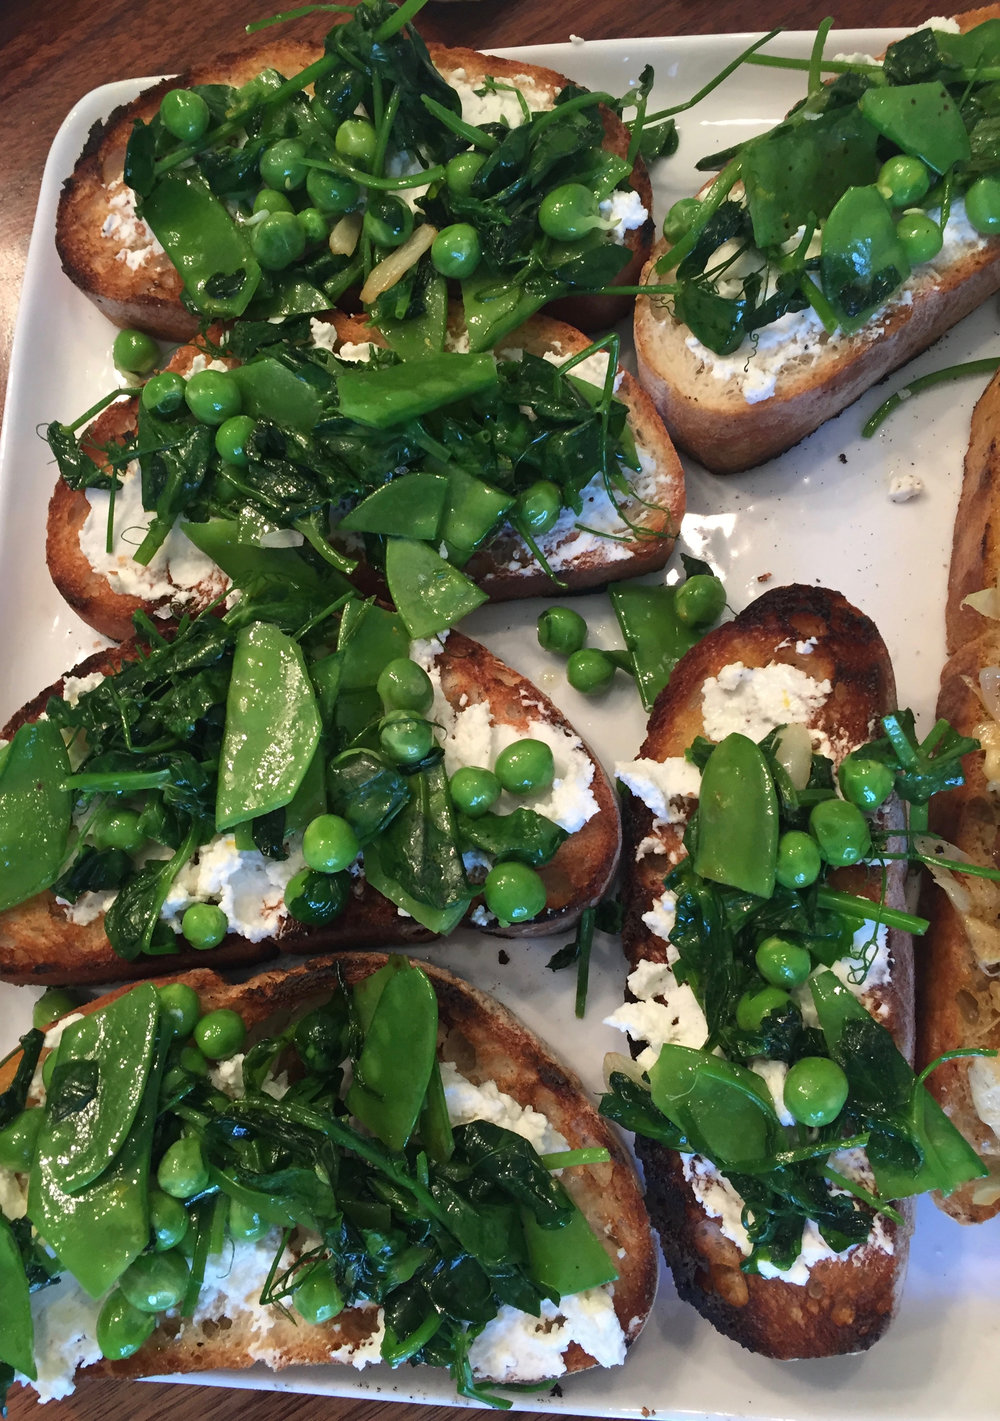 Thank god spring is (nearly) here. Grilled bread with ricotta, lemon zest, olive oil, salt and sauteed pea shoots, snow peas, and English peas is fab.